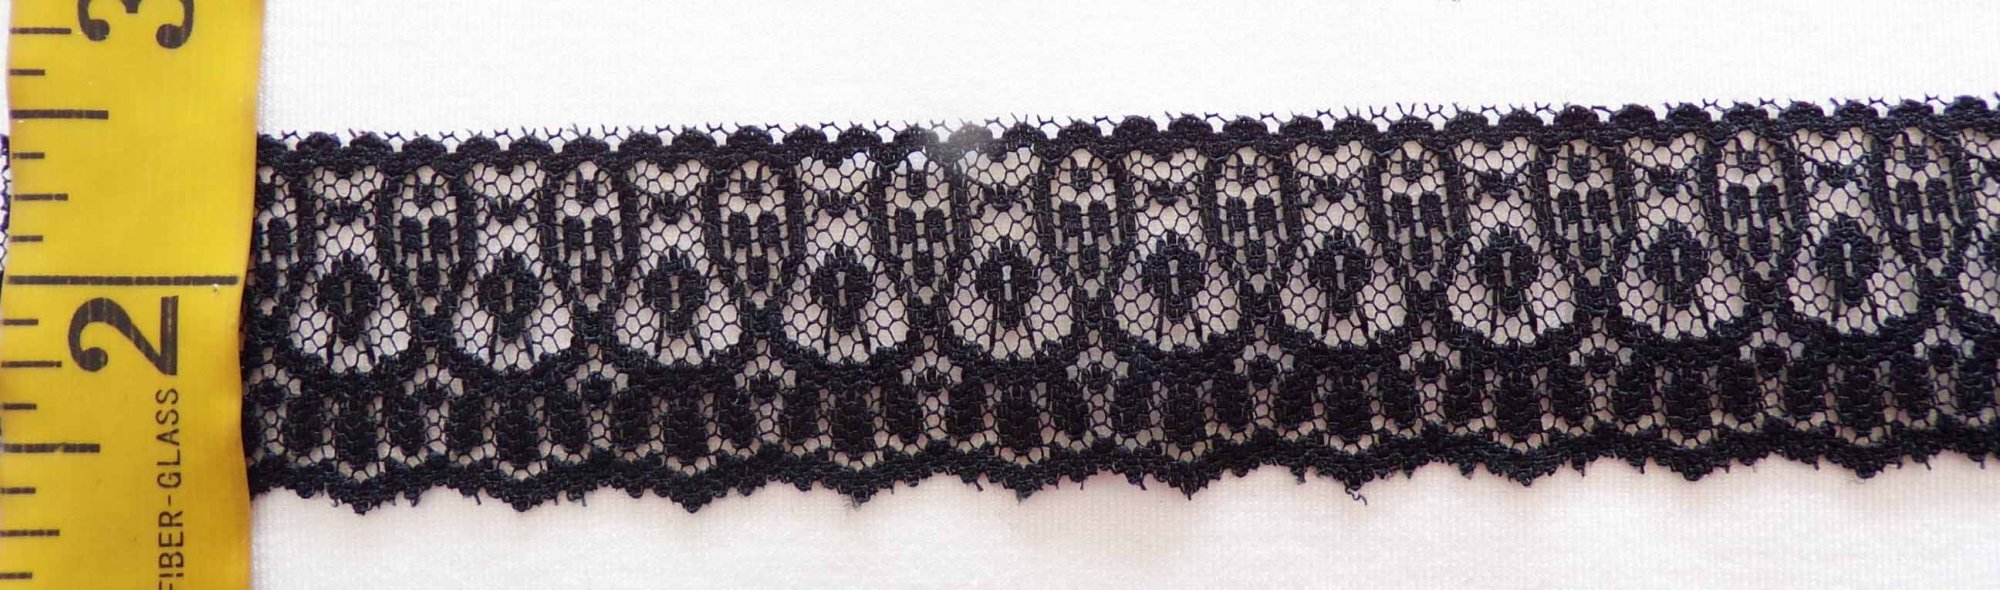 1 1/4 Black Rigid Lace